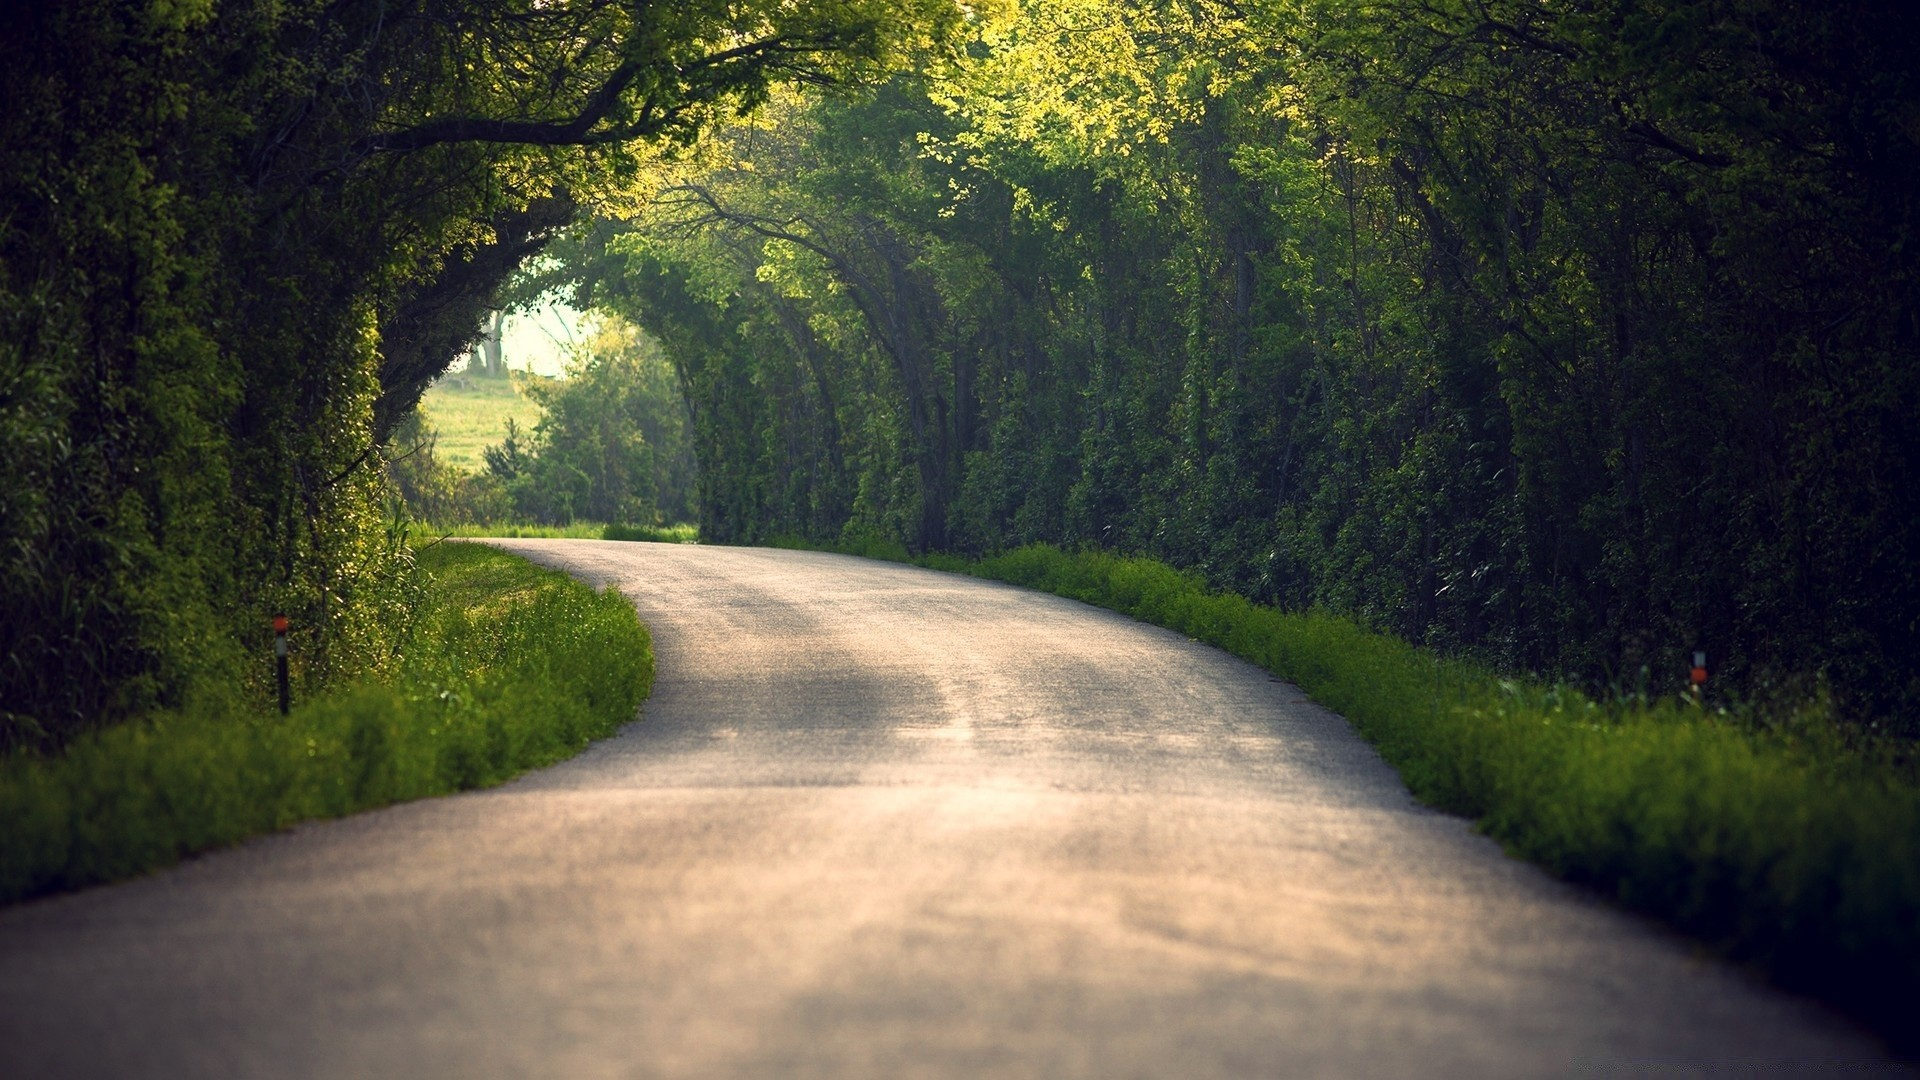 summer road tree landscape guidance wood nature dawn outdoors park countryside scenic travel fog grass